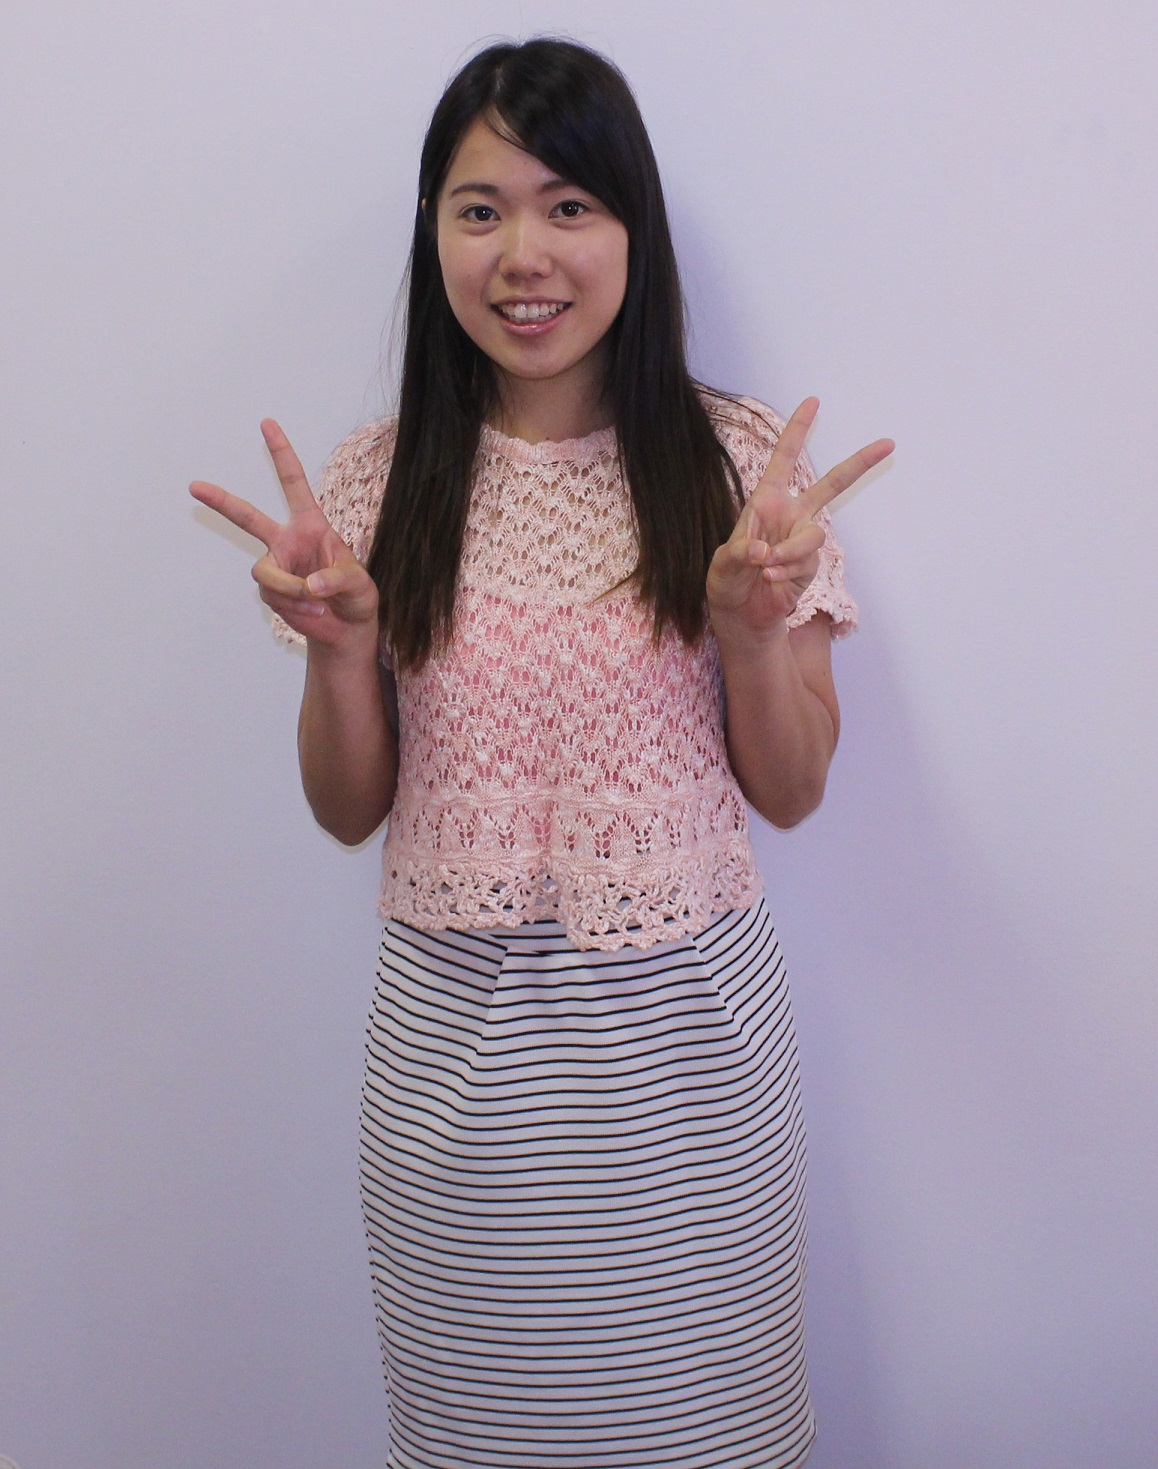 Emi Yuda from Japan took an English course at EC Montreal